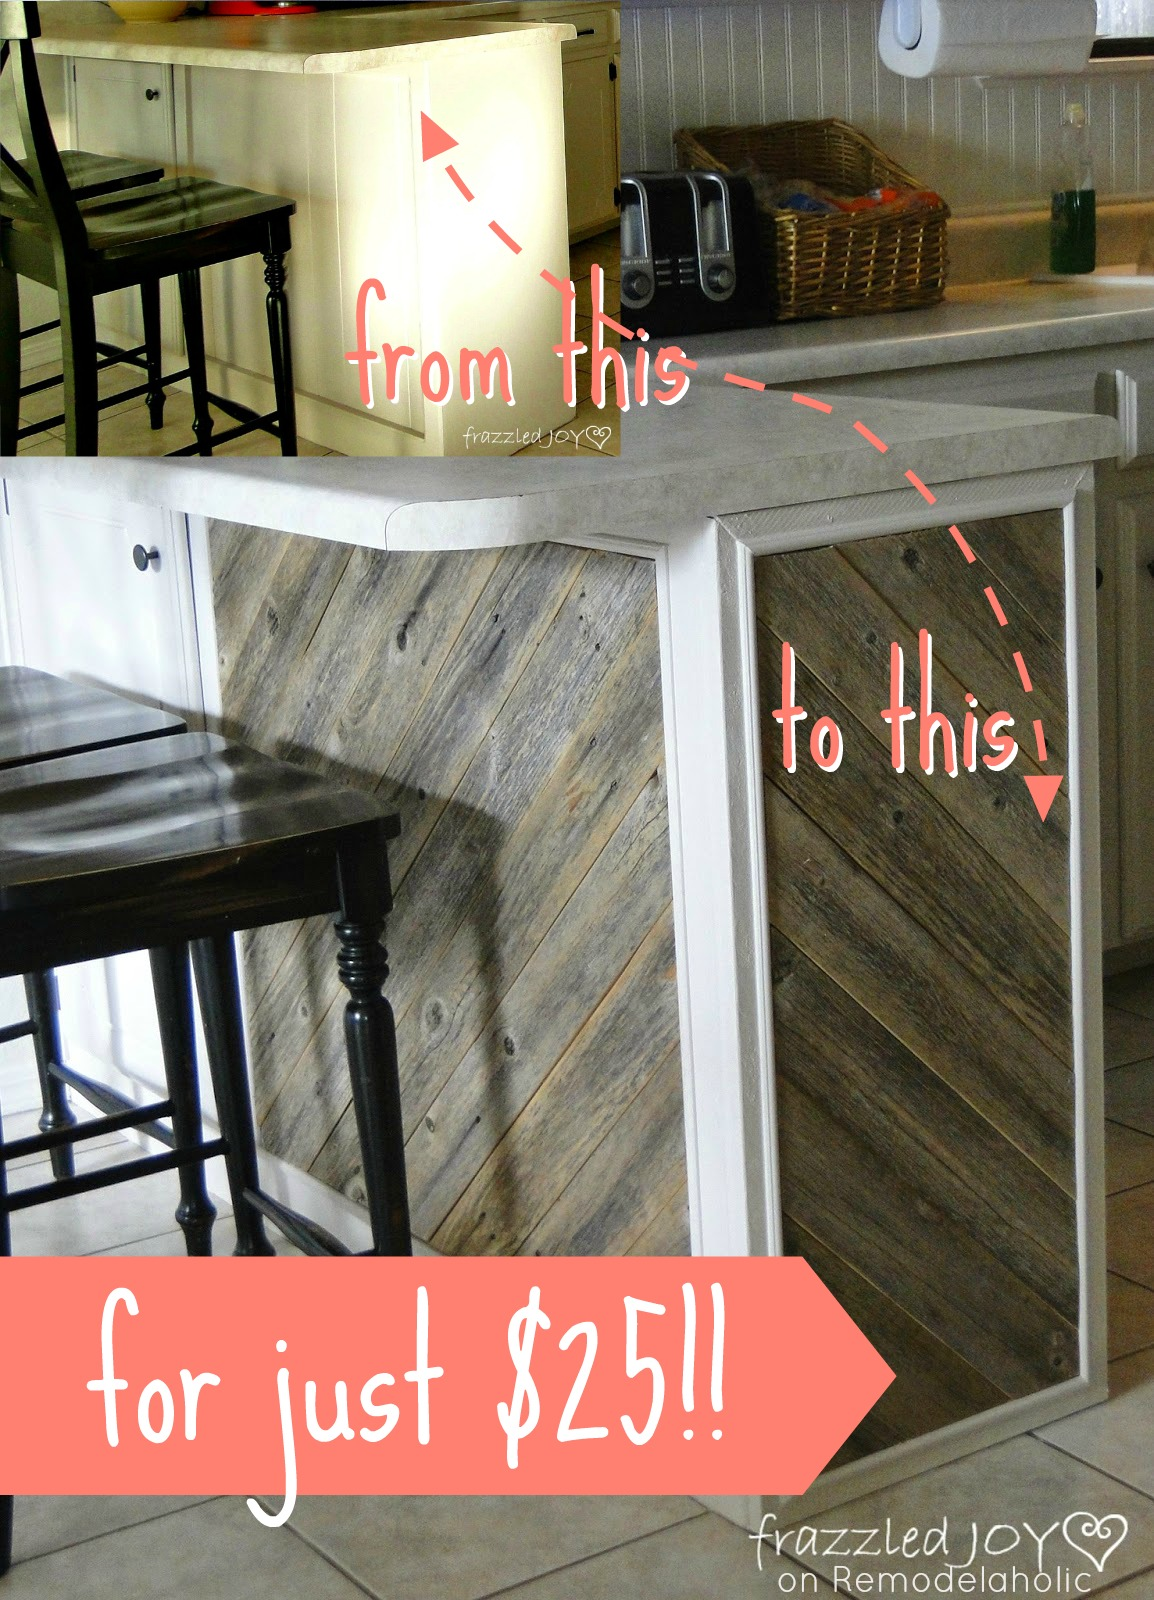 25 rustic reclaimed wood plank kitchen island tutorial frazzled joy on remodelaholiccom - Reclaimed Wood Kitchen Island